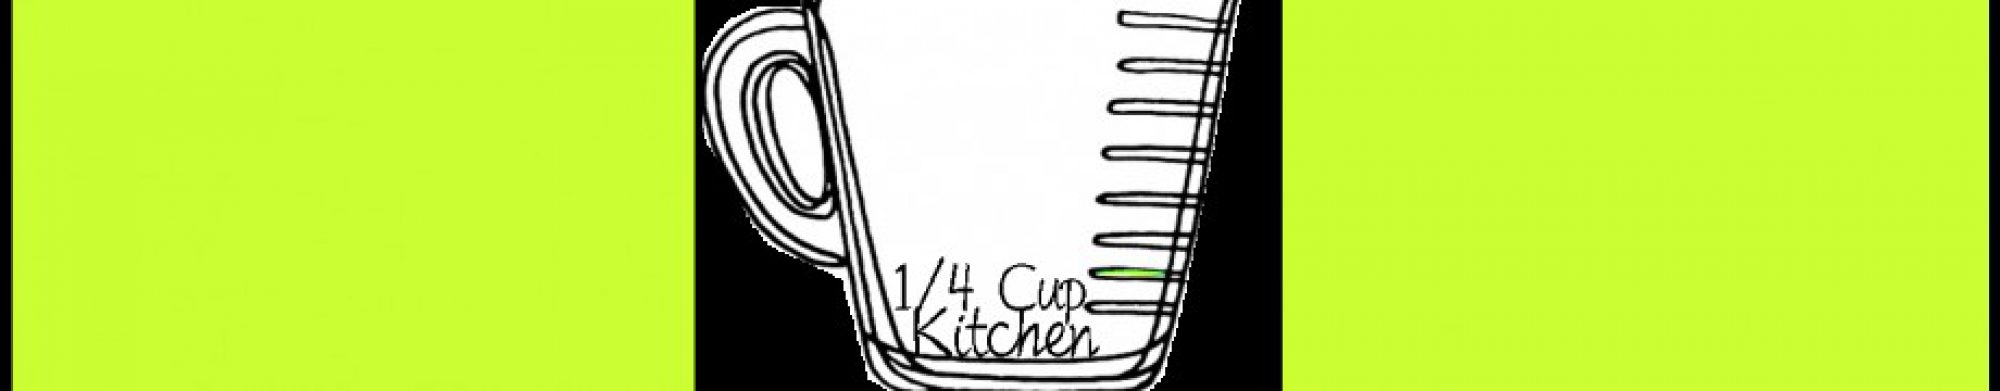 1/4 Cup Kitchen